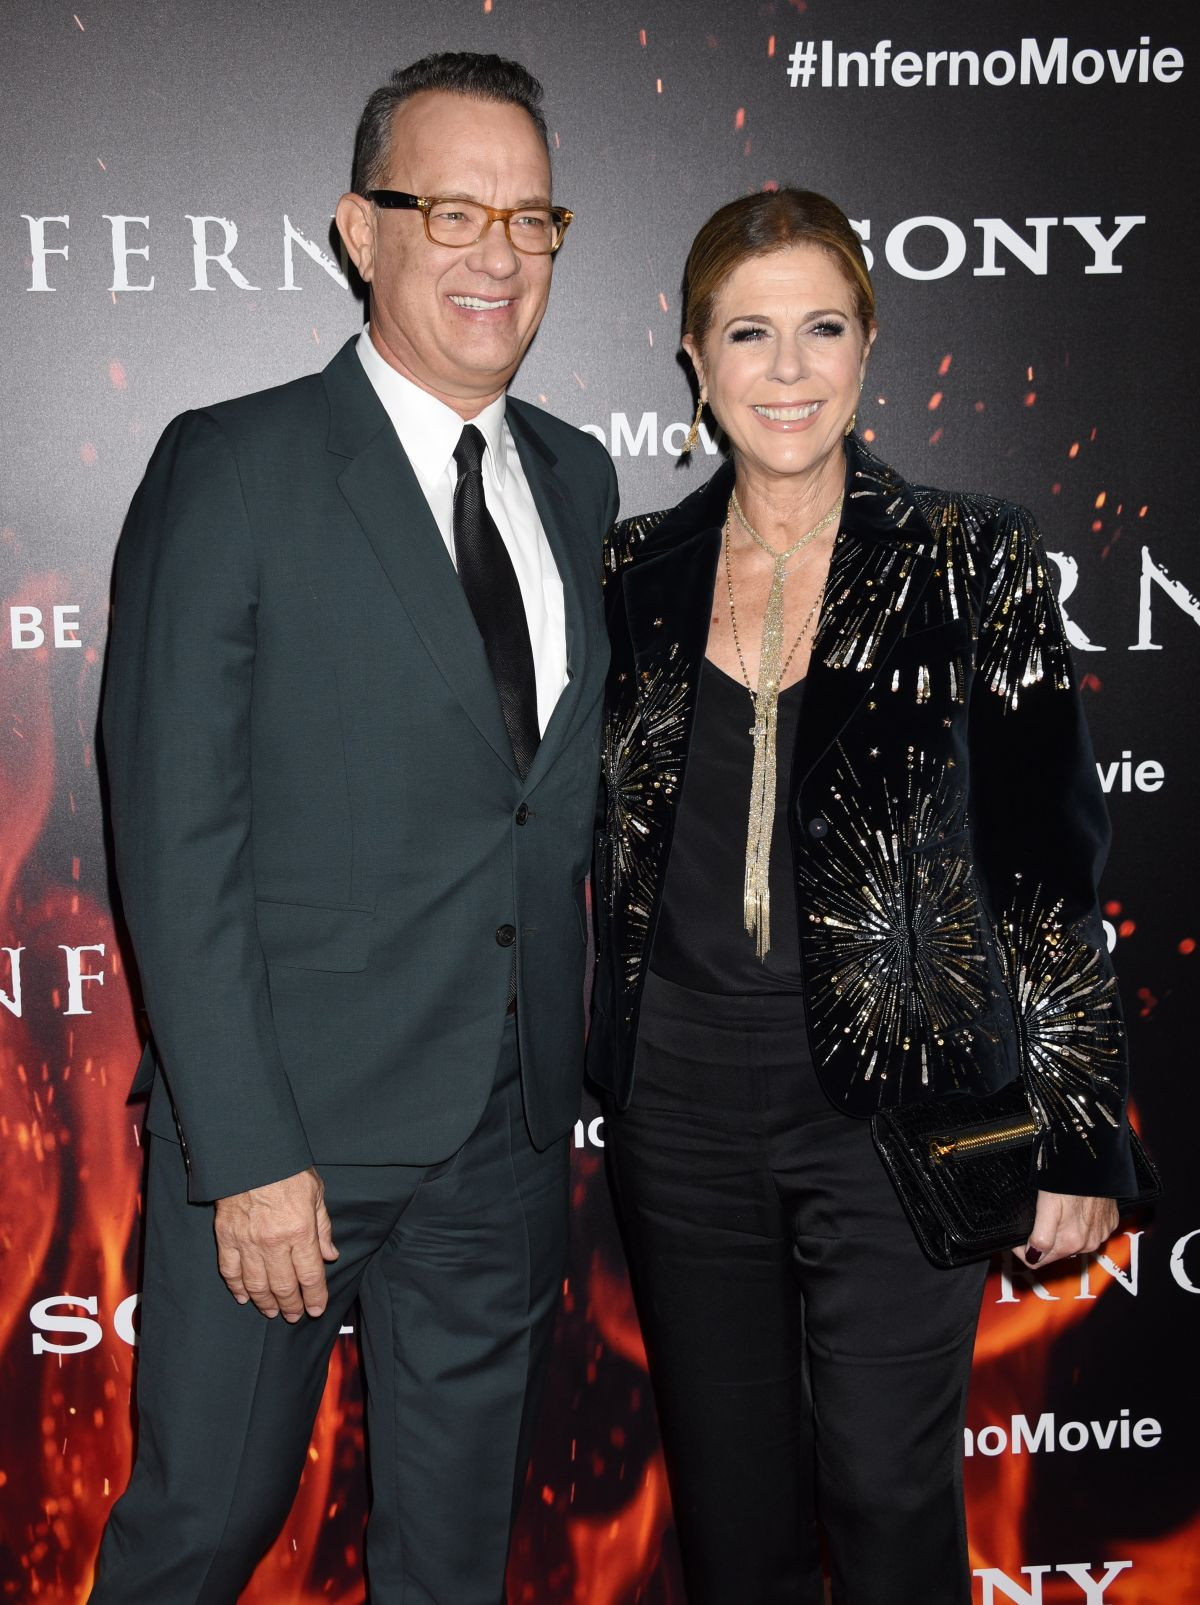 RITA WILSON at 'Inferno' Premiere in Los Angeles 10/25/2016